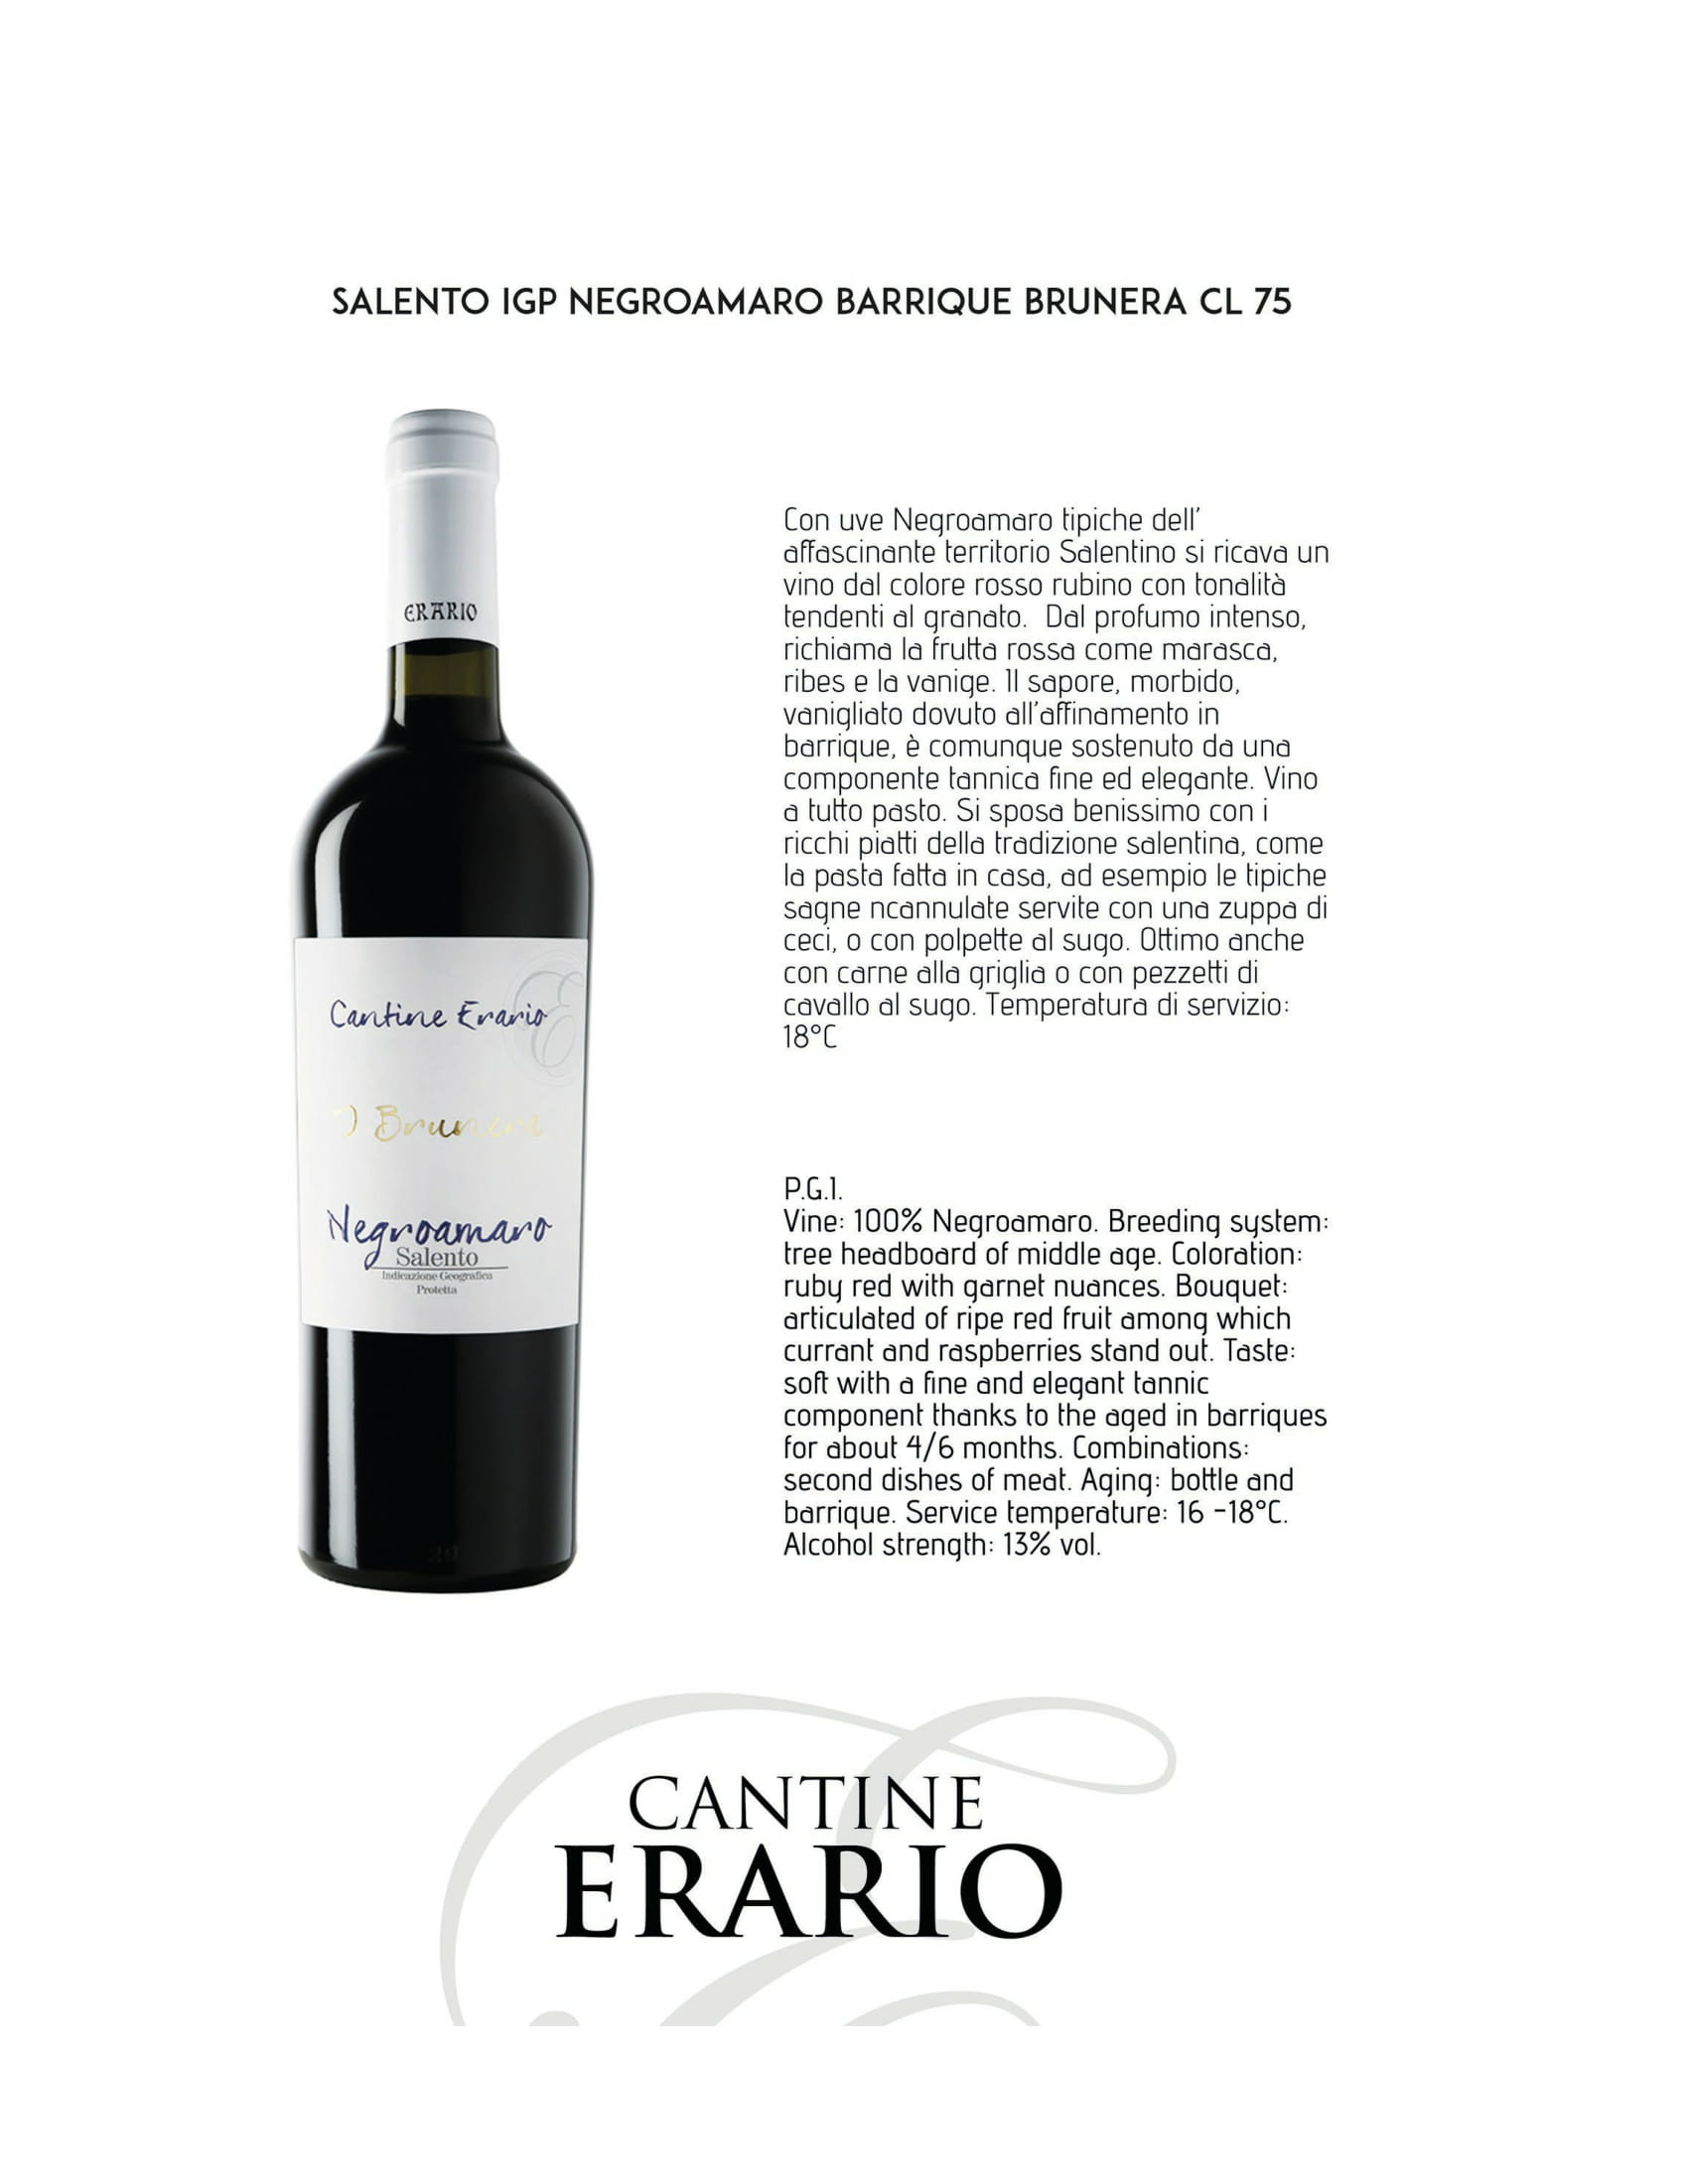 Salento IGP Negroamaaro Barrique Brunera 75cl